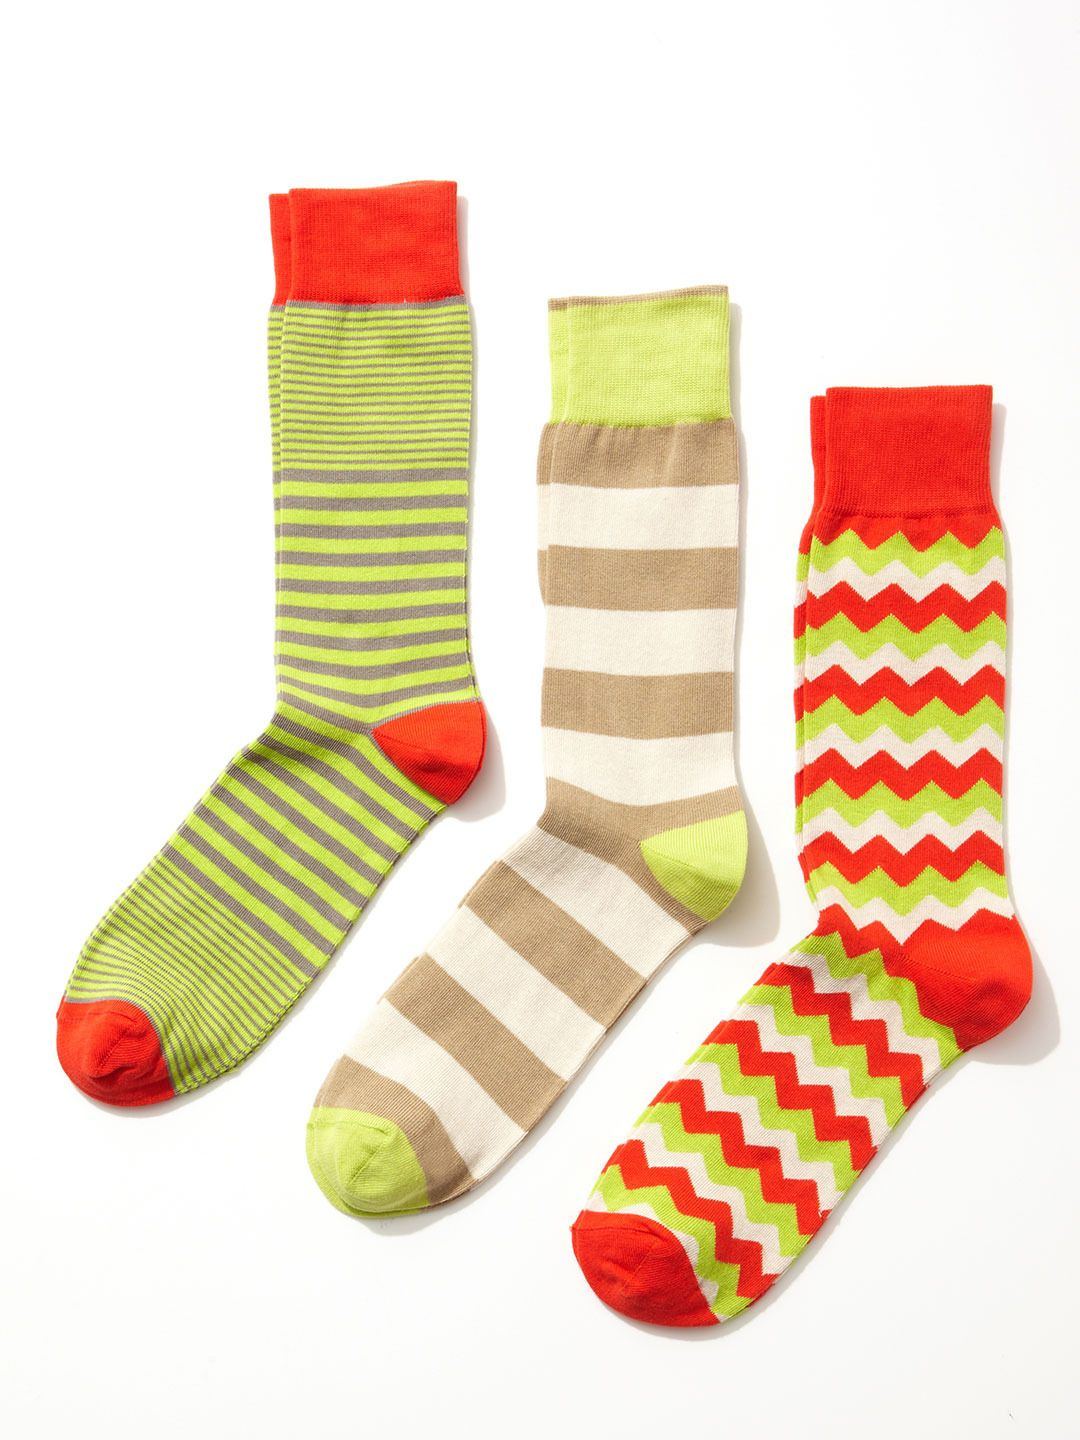 Zigzag and Stripe Socks (3 Pack) by Clapham at Gilt